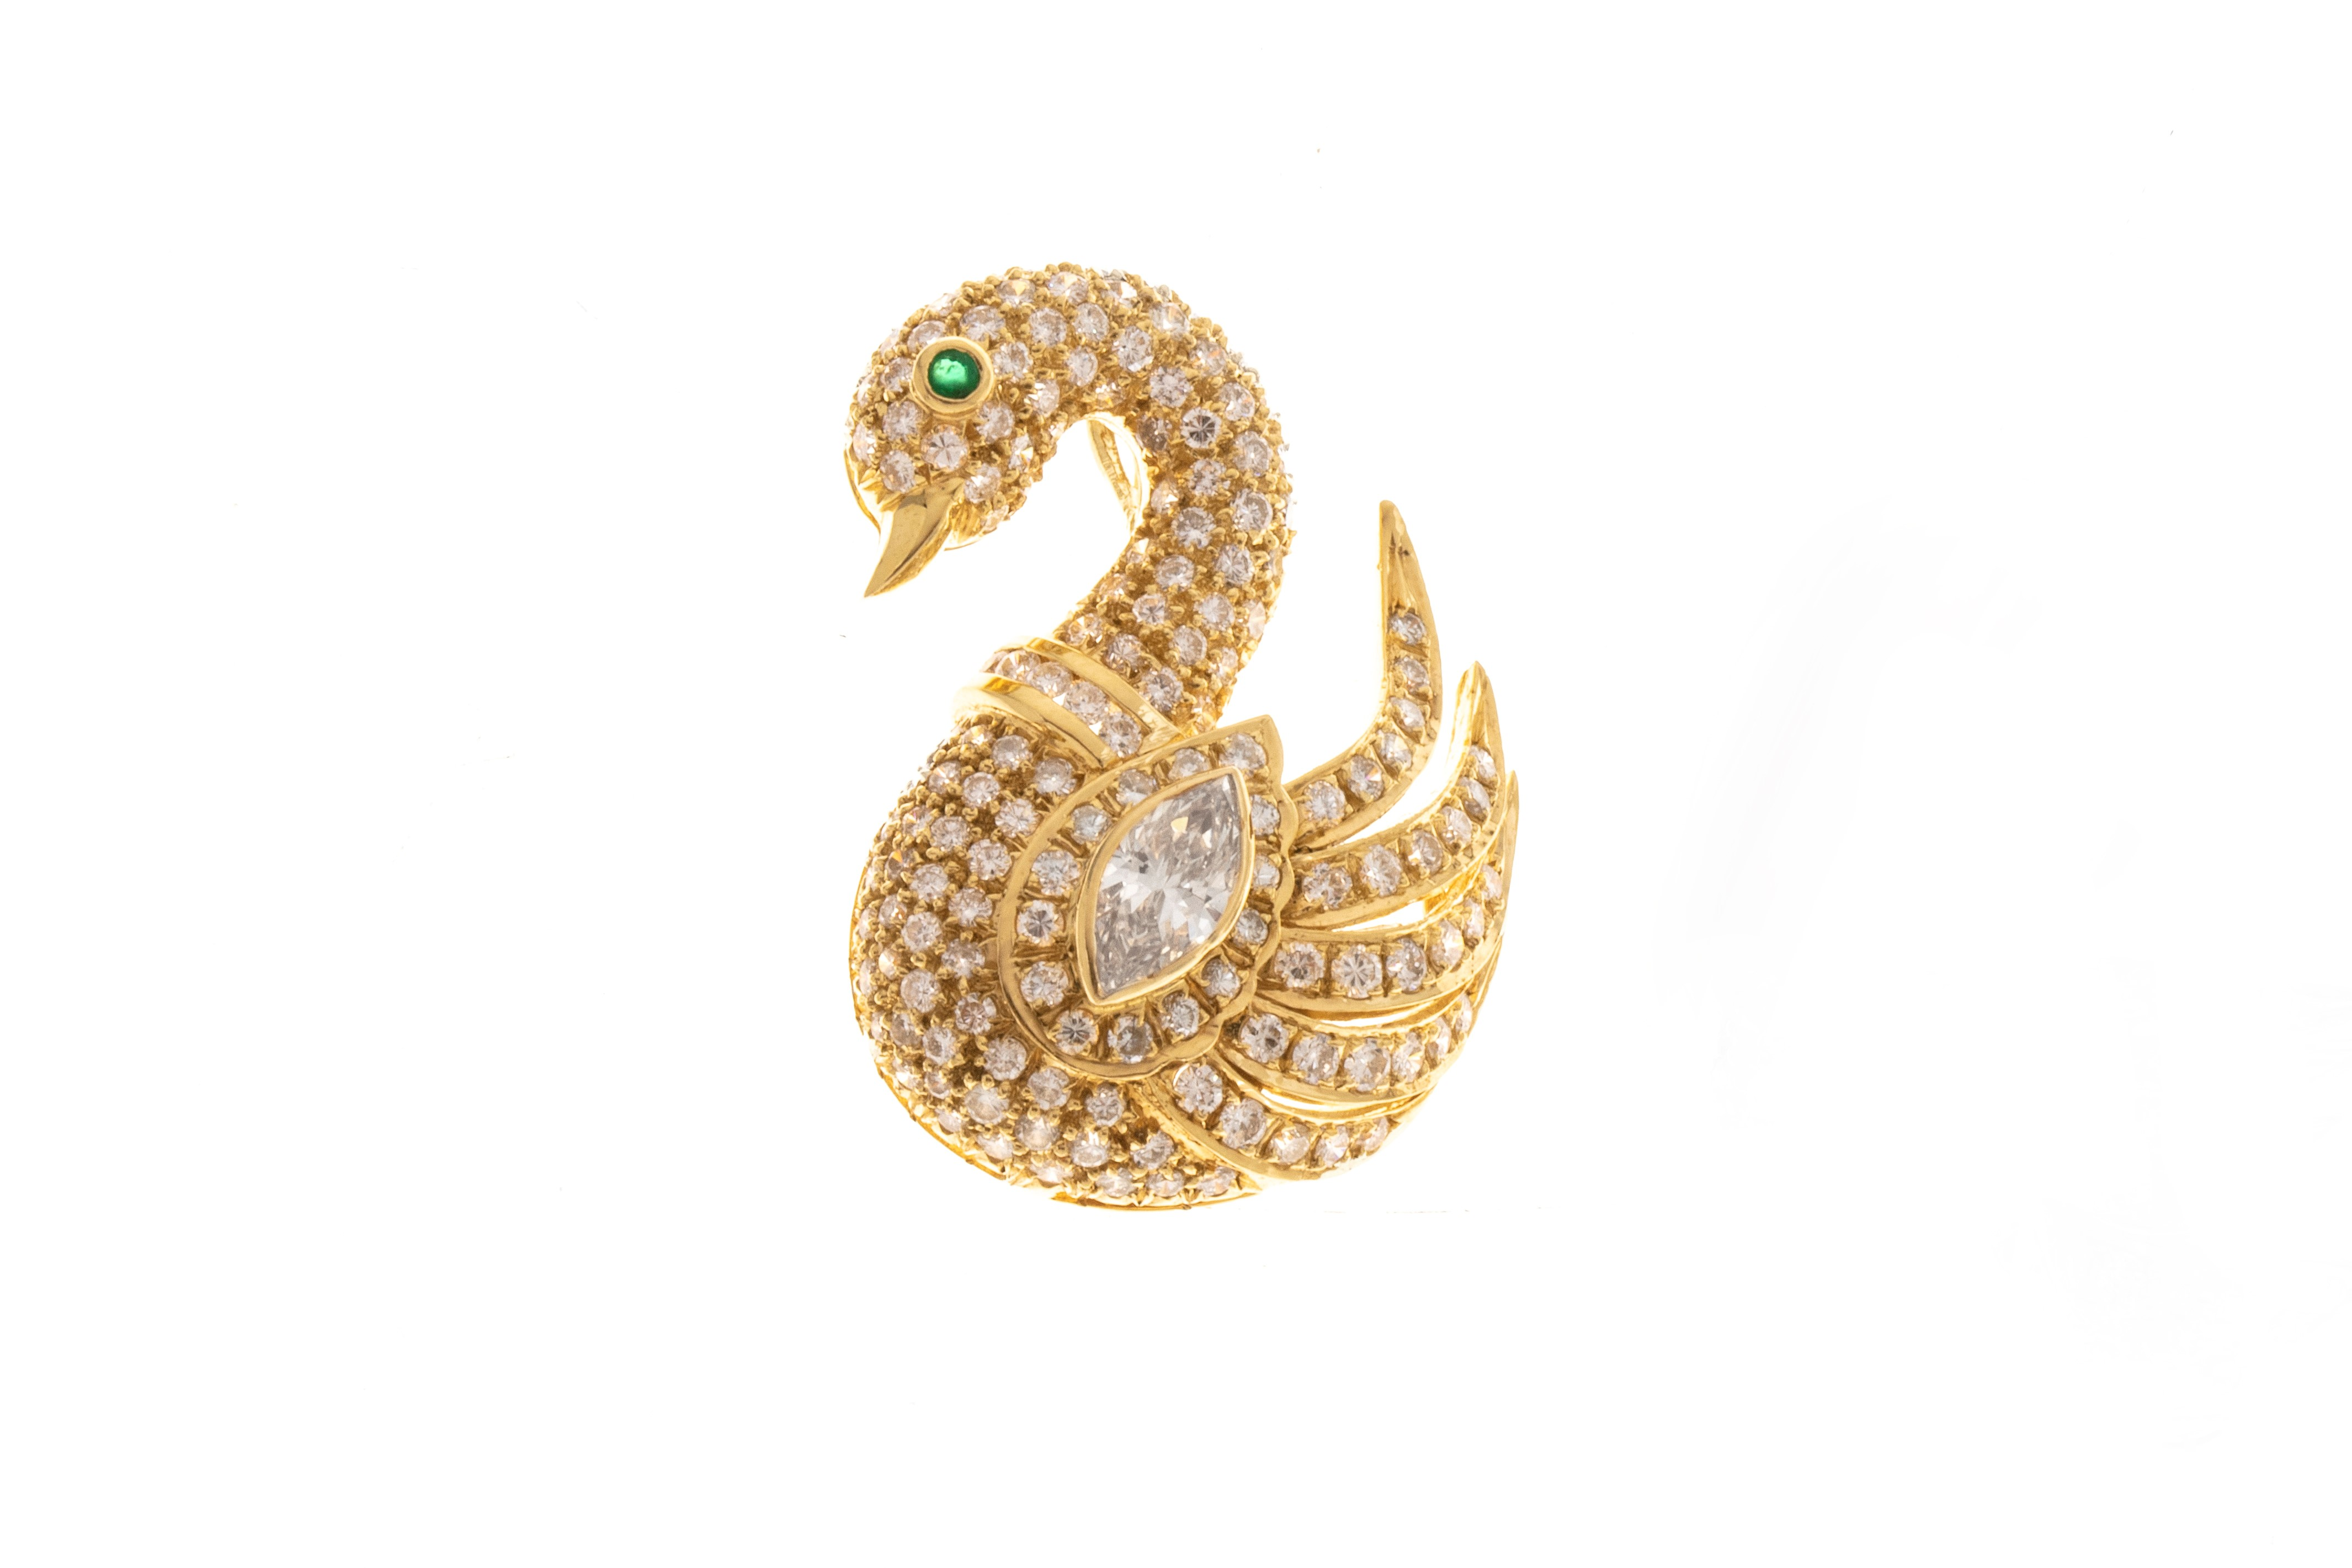 Diamond and 18K white gold swan form pendant-brooch (est. $700-$900).